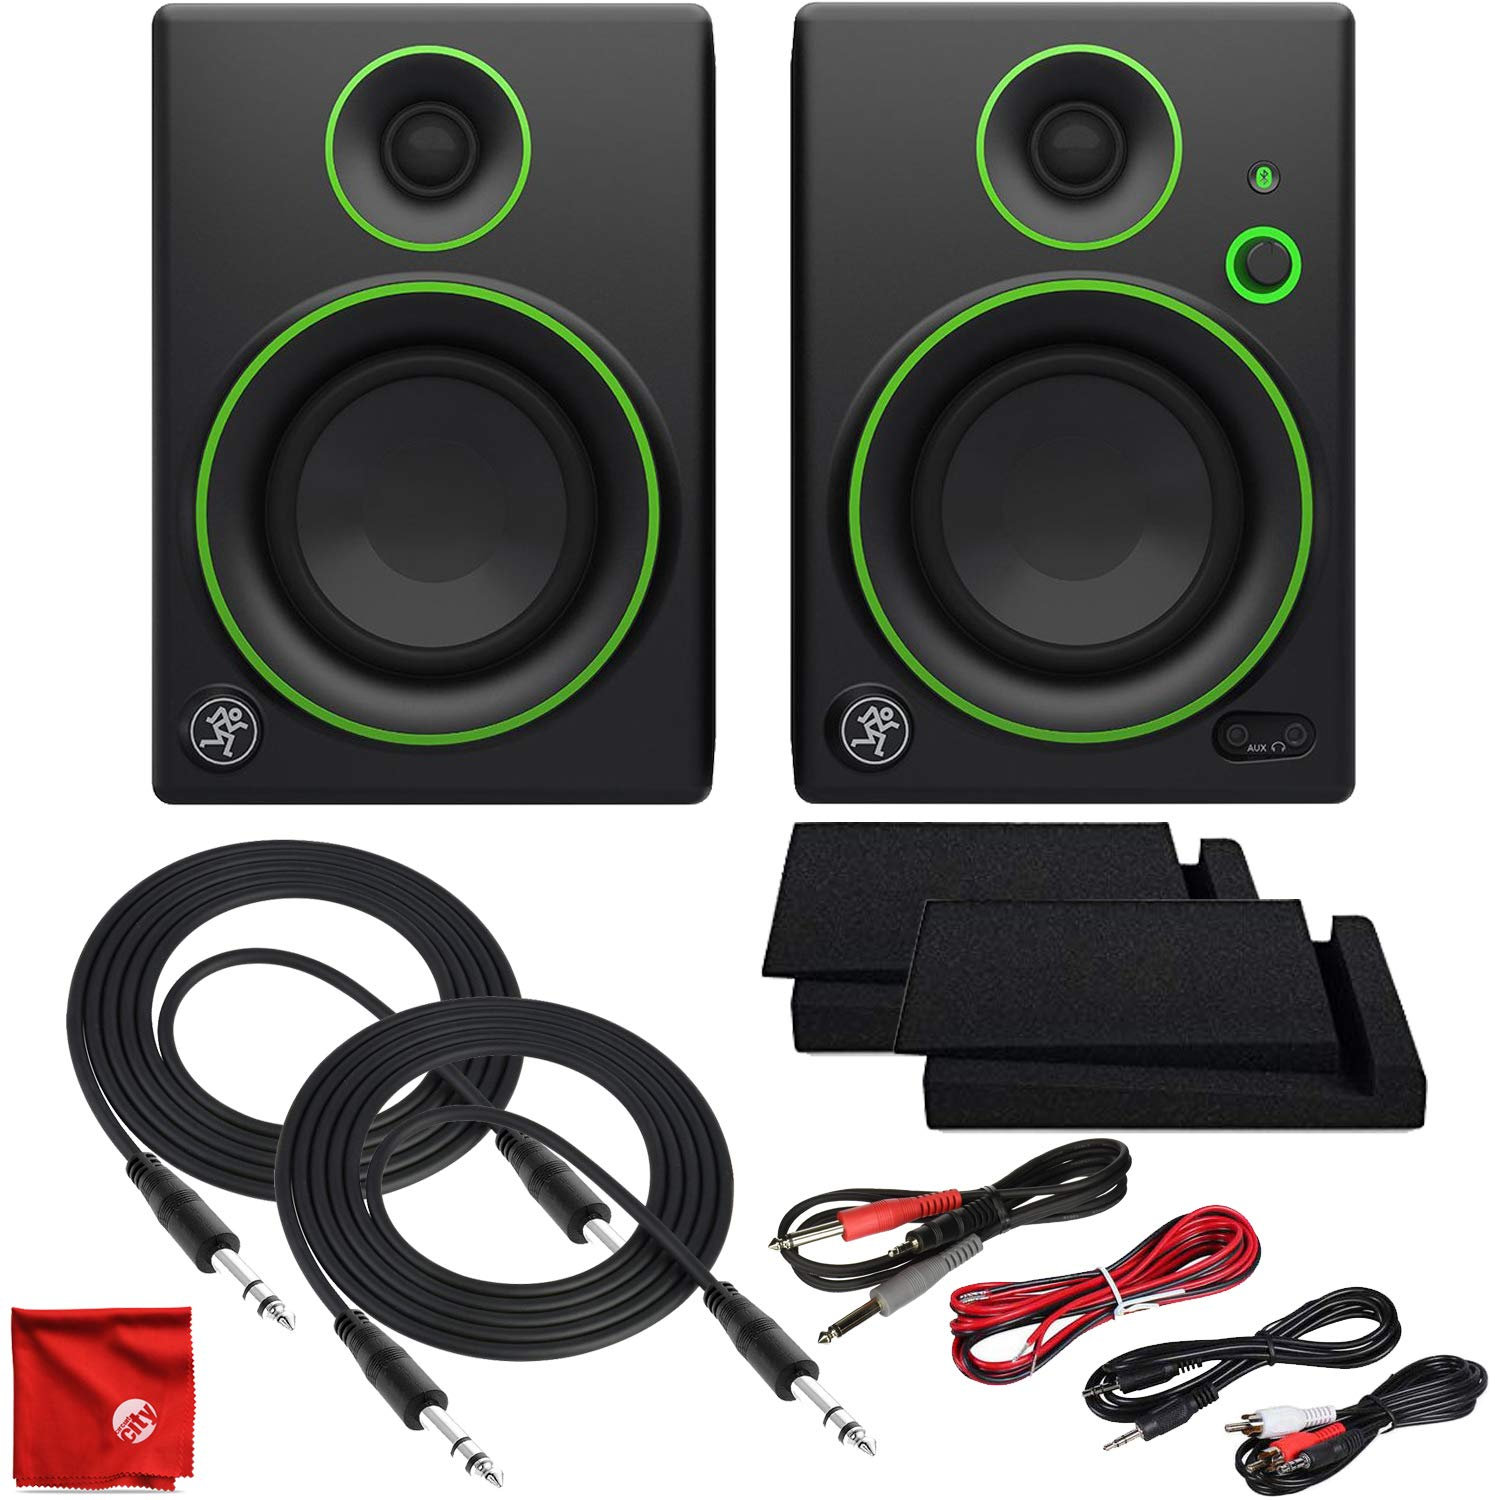 Mackie CR4BT 4'' Creative Reference Multimedia Studio Monitors with Bluetooth Ultimate Cable Bundle Including Balanced Stereo TRS with Dual 1/4'' to 1/8'', RCA and 3.5mm MP3 Cables